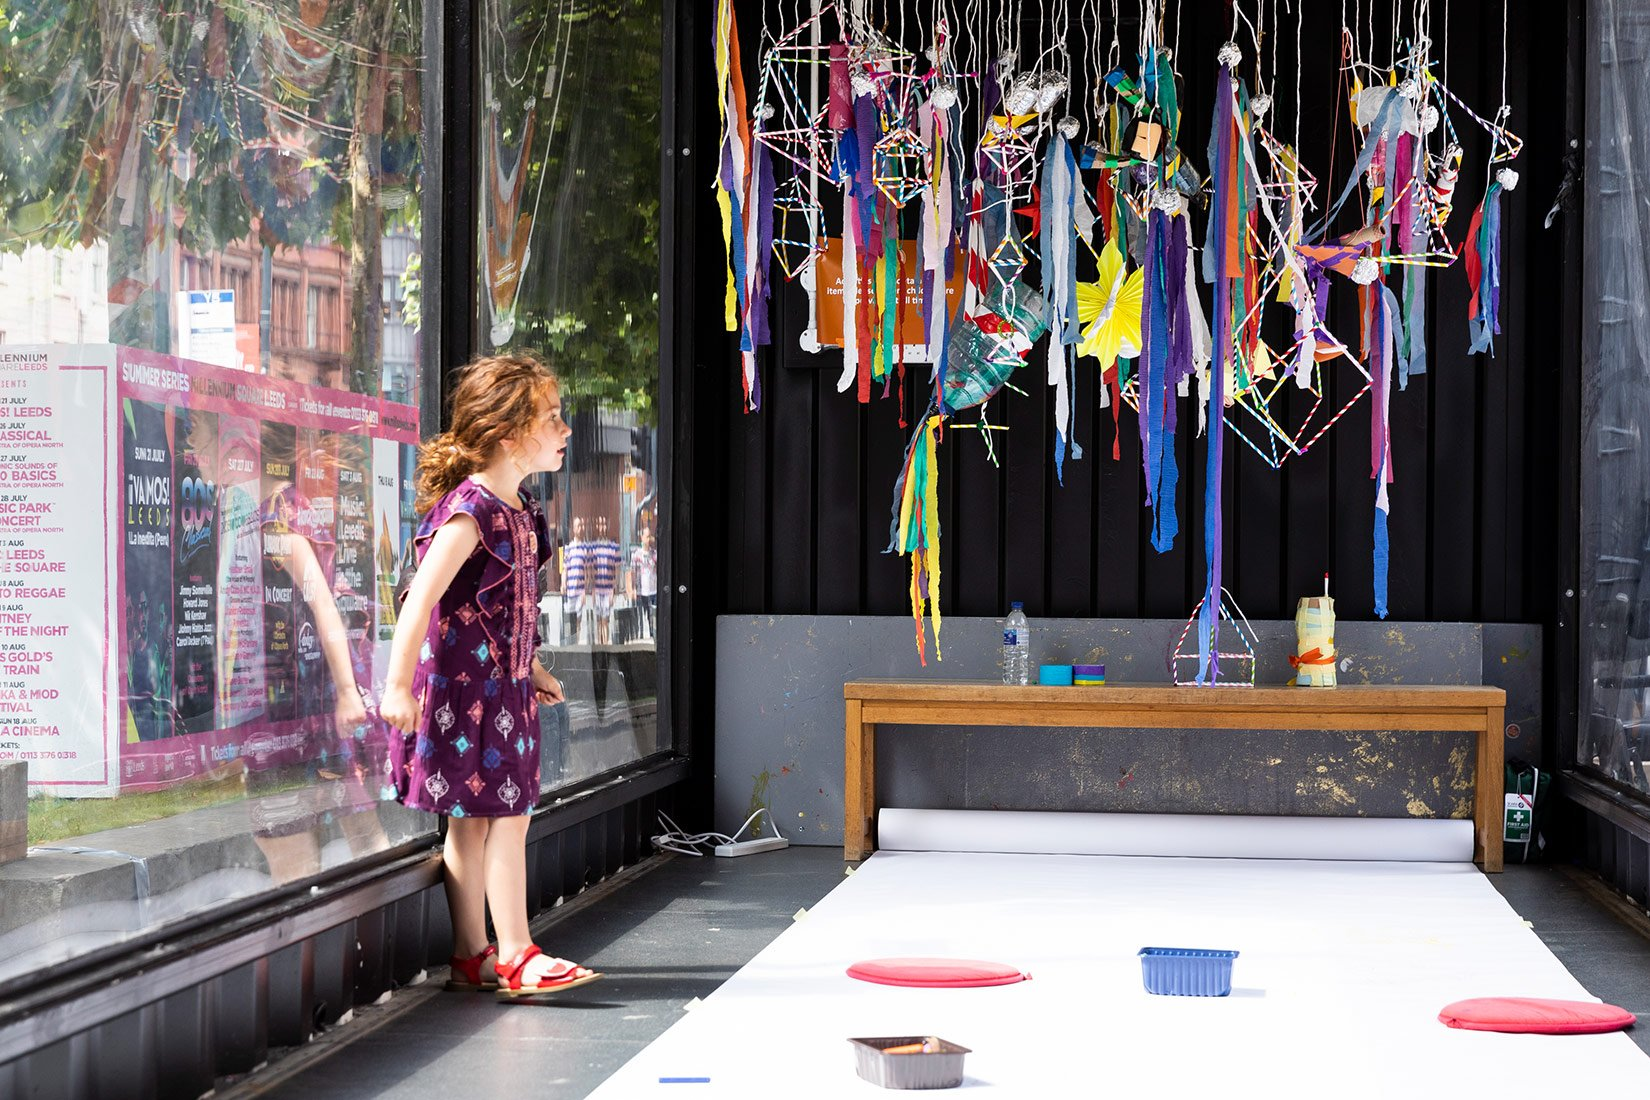 Create, Sculpt, Play 2019, outside Victoria Gardens, Leeds, Inside the installation - Photograph by Nicholas Singleton